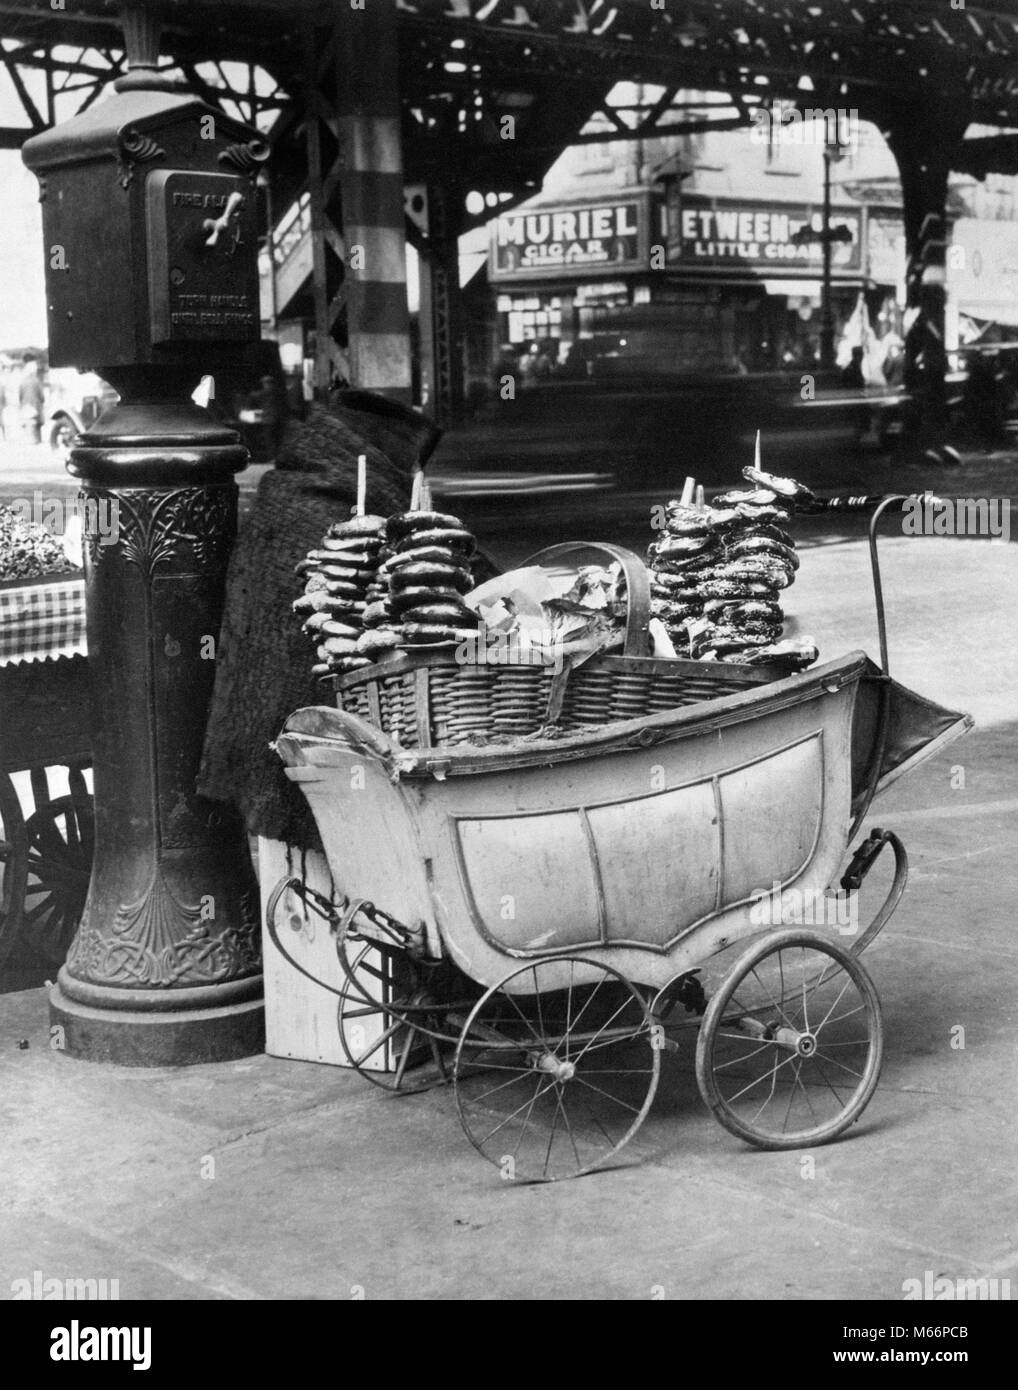 1930s DEPRESSION SCENE OF PRETZEL VENDOR CART MADE FROM A BABY CARRIAGE NEXT TO FIRE ALARM BOX NEW YORK CITY USA - Stock Image